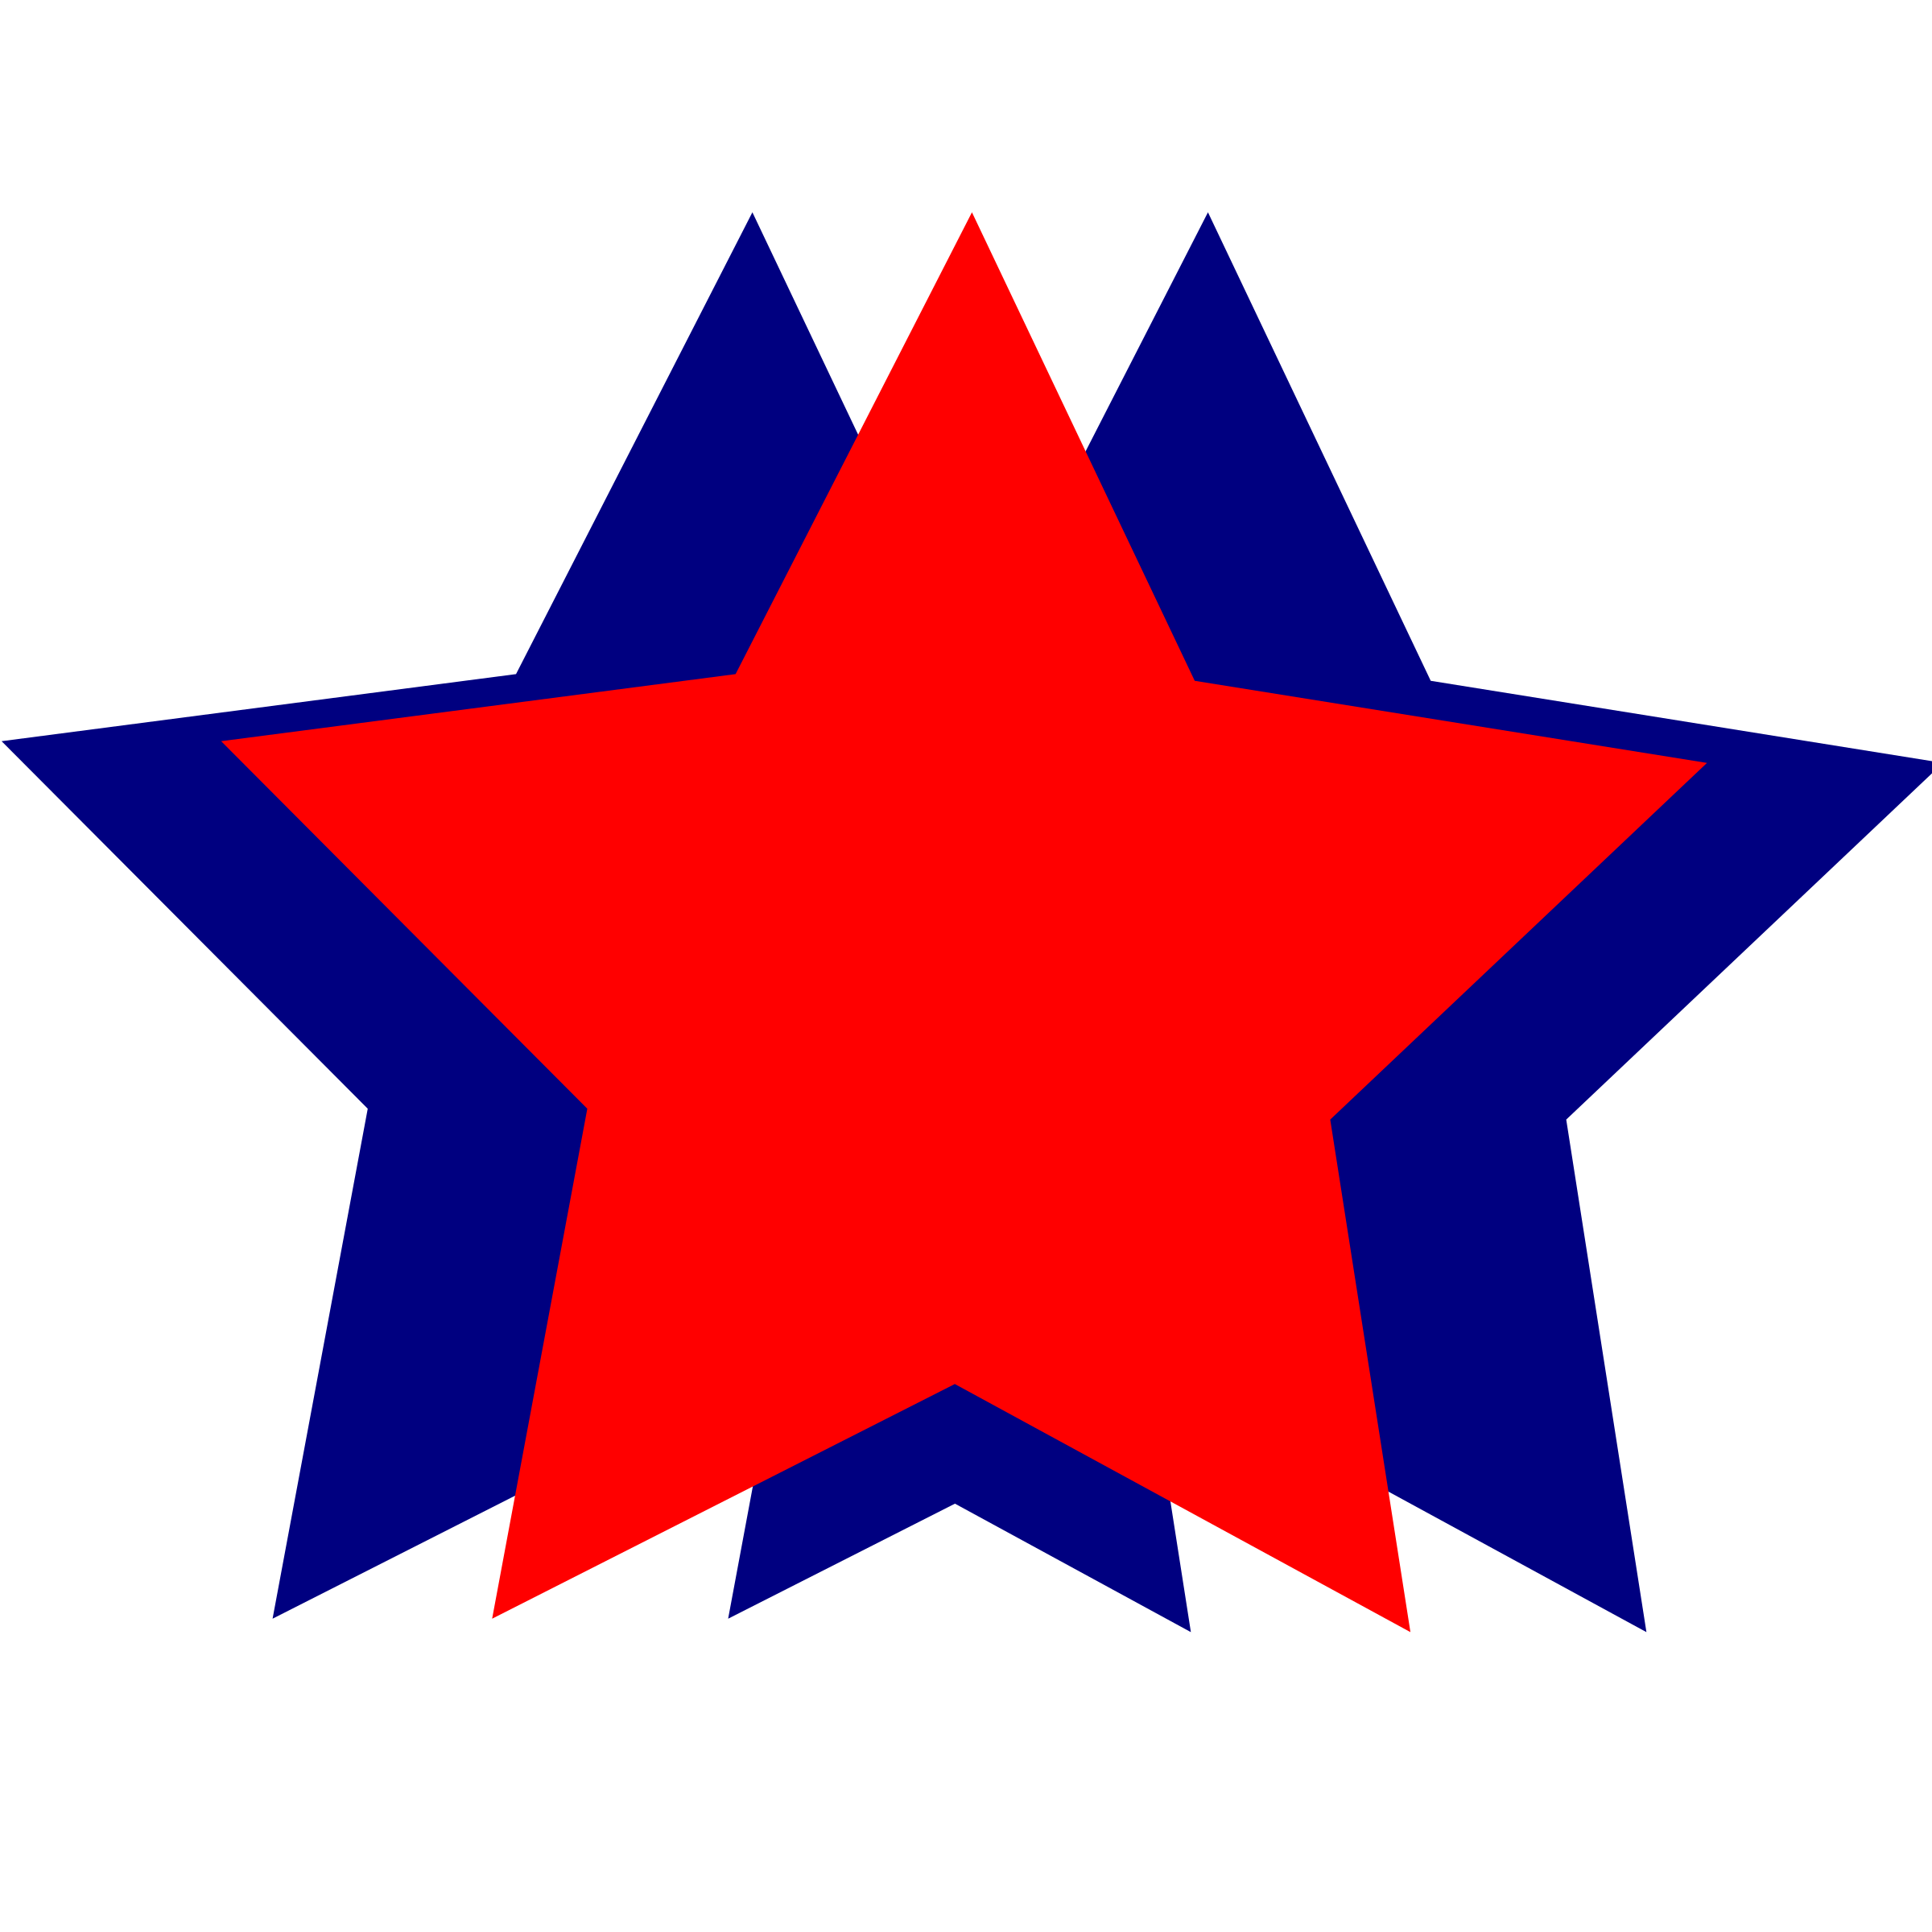 2400x2400 Star Clipart Red And Blue